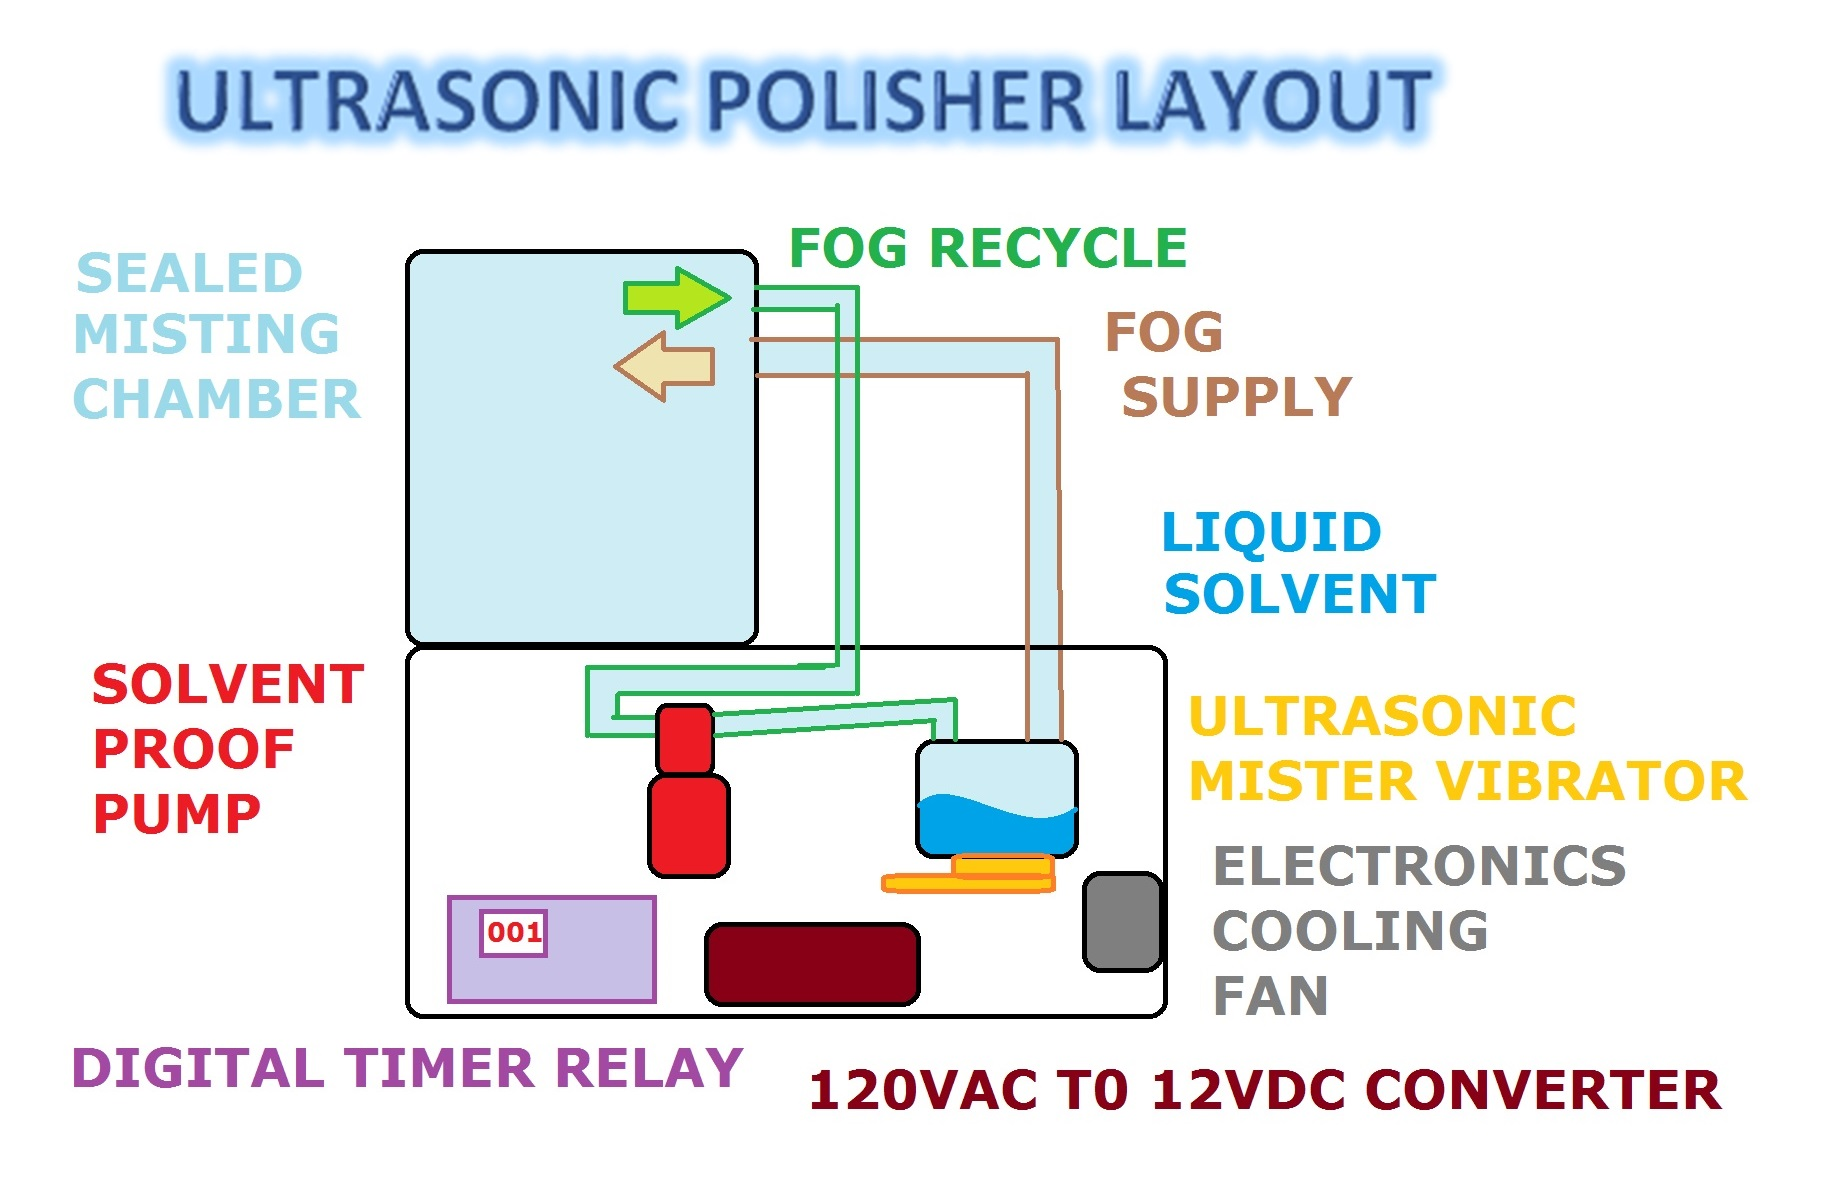 Picture of Automated Ultrasonic Misting 3D Print Polisher PRO